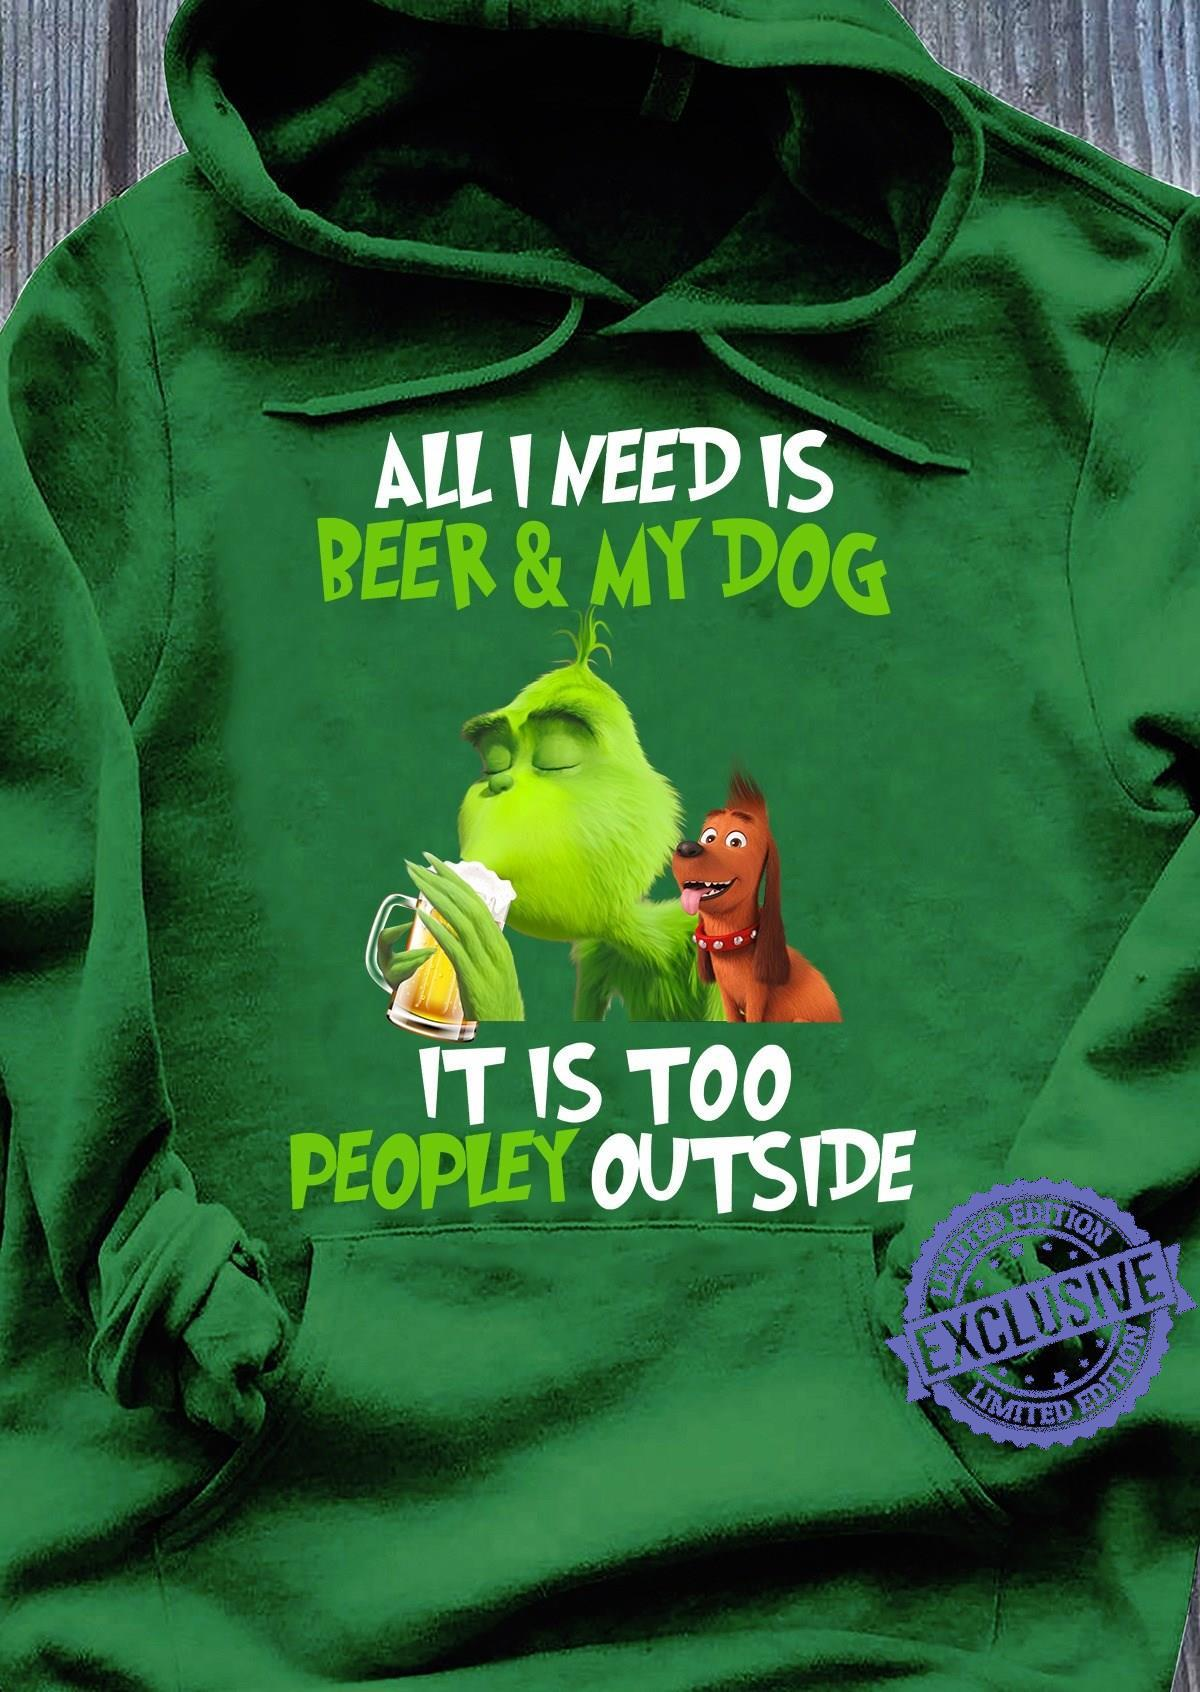 Grinch and max dog all i need is beer and my dog it is too peopley outside shirt